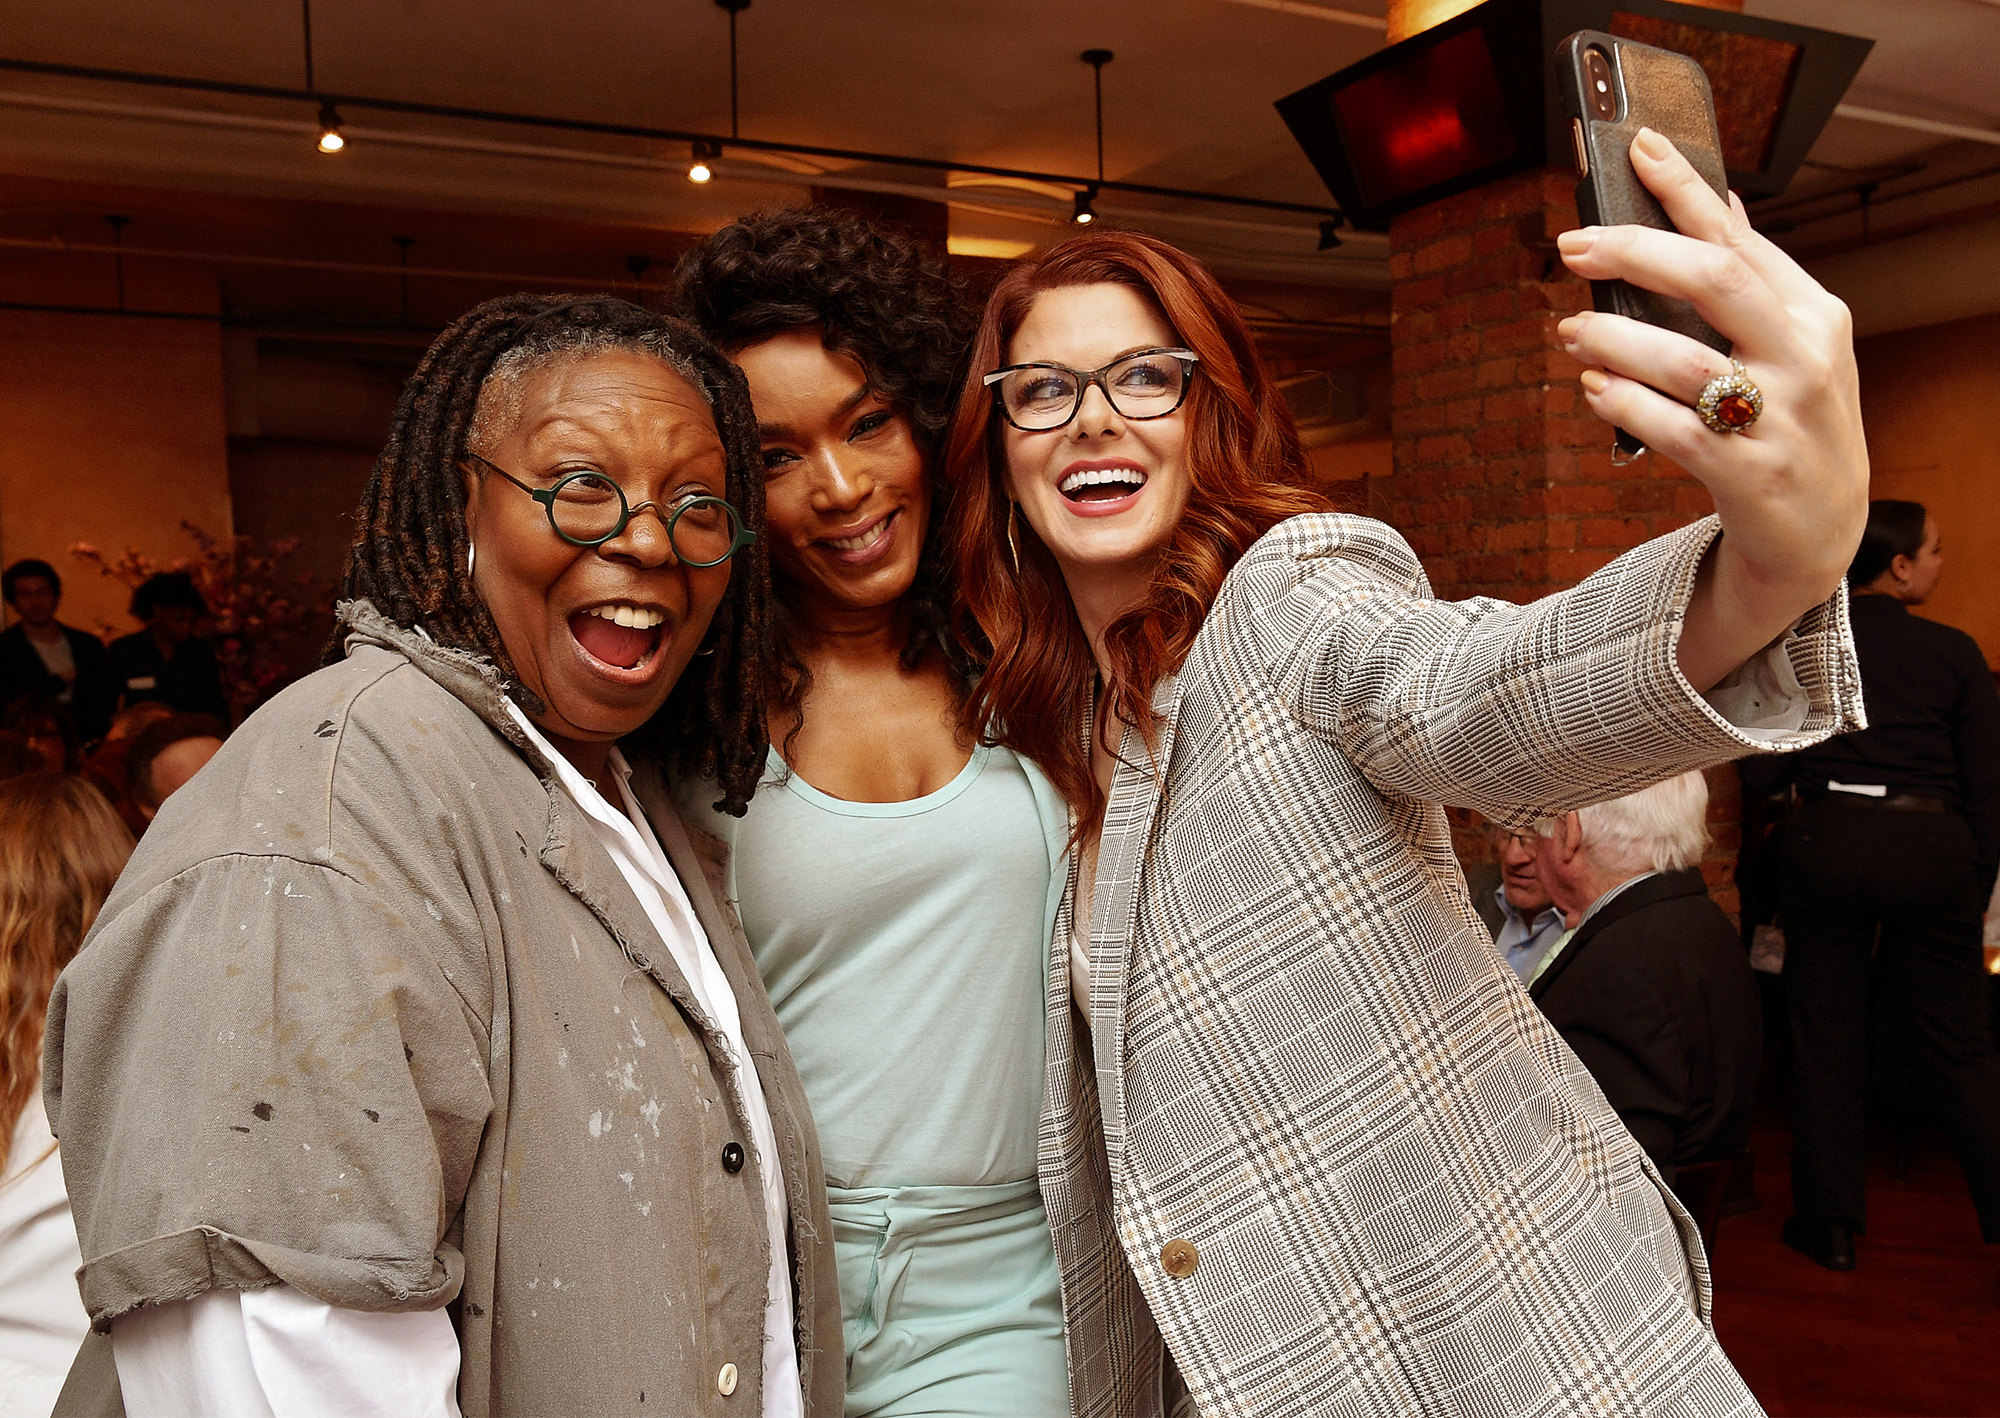 Whoopi Goldberg, Angela Bassett, and Debra Messing